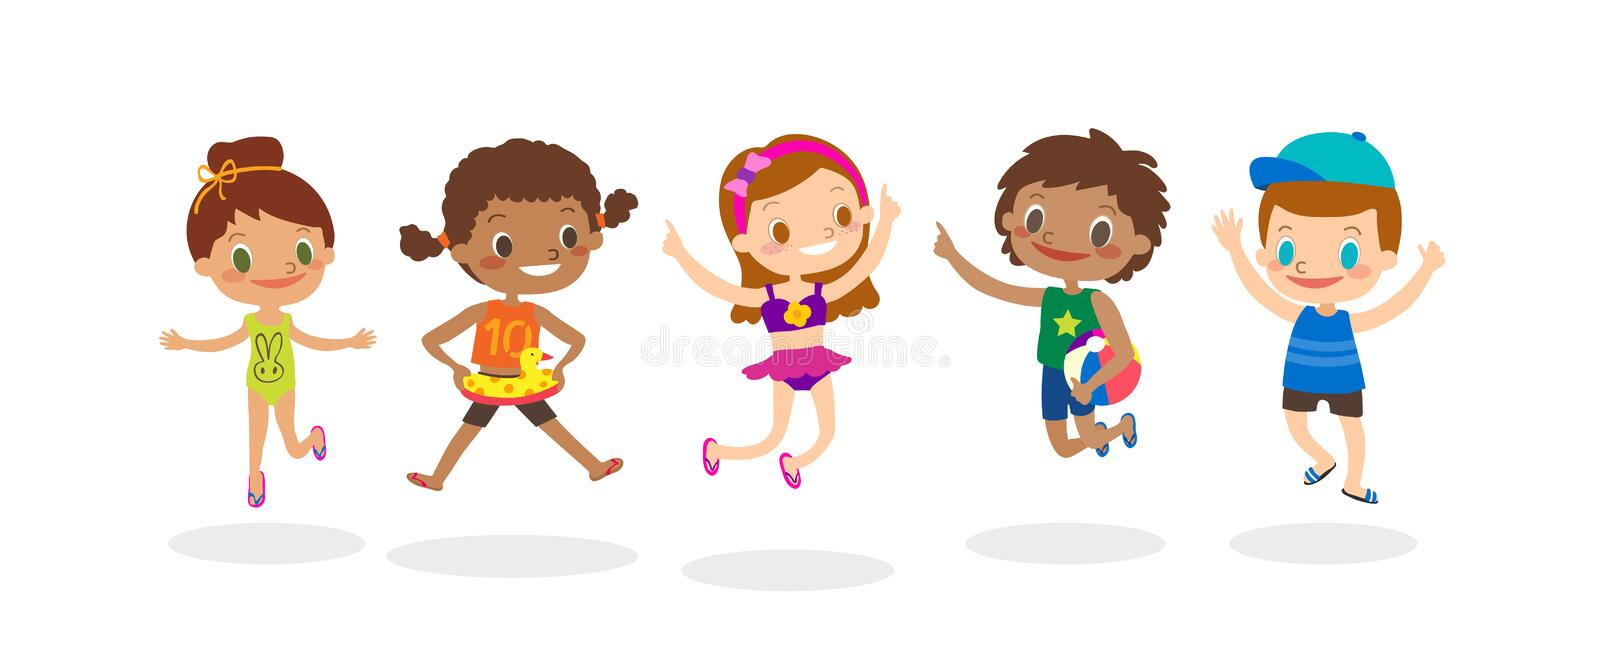 Diverse Group Of Kids Jumping isolated on white background, Happy Children with summer costume. cartoon illustration. Diverse Group Of Kids Jumping isolated on vector illustration